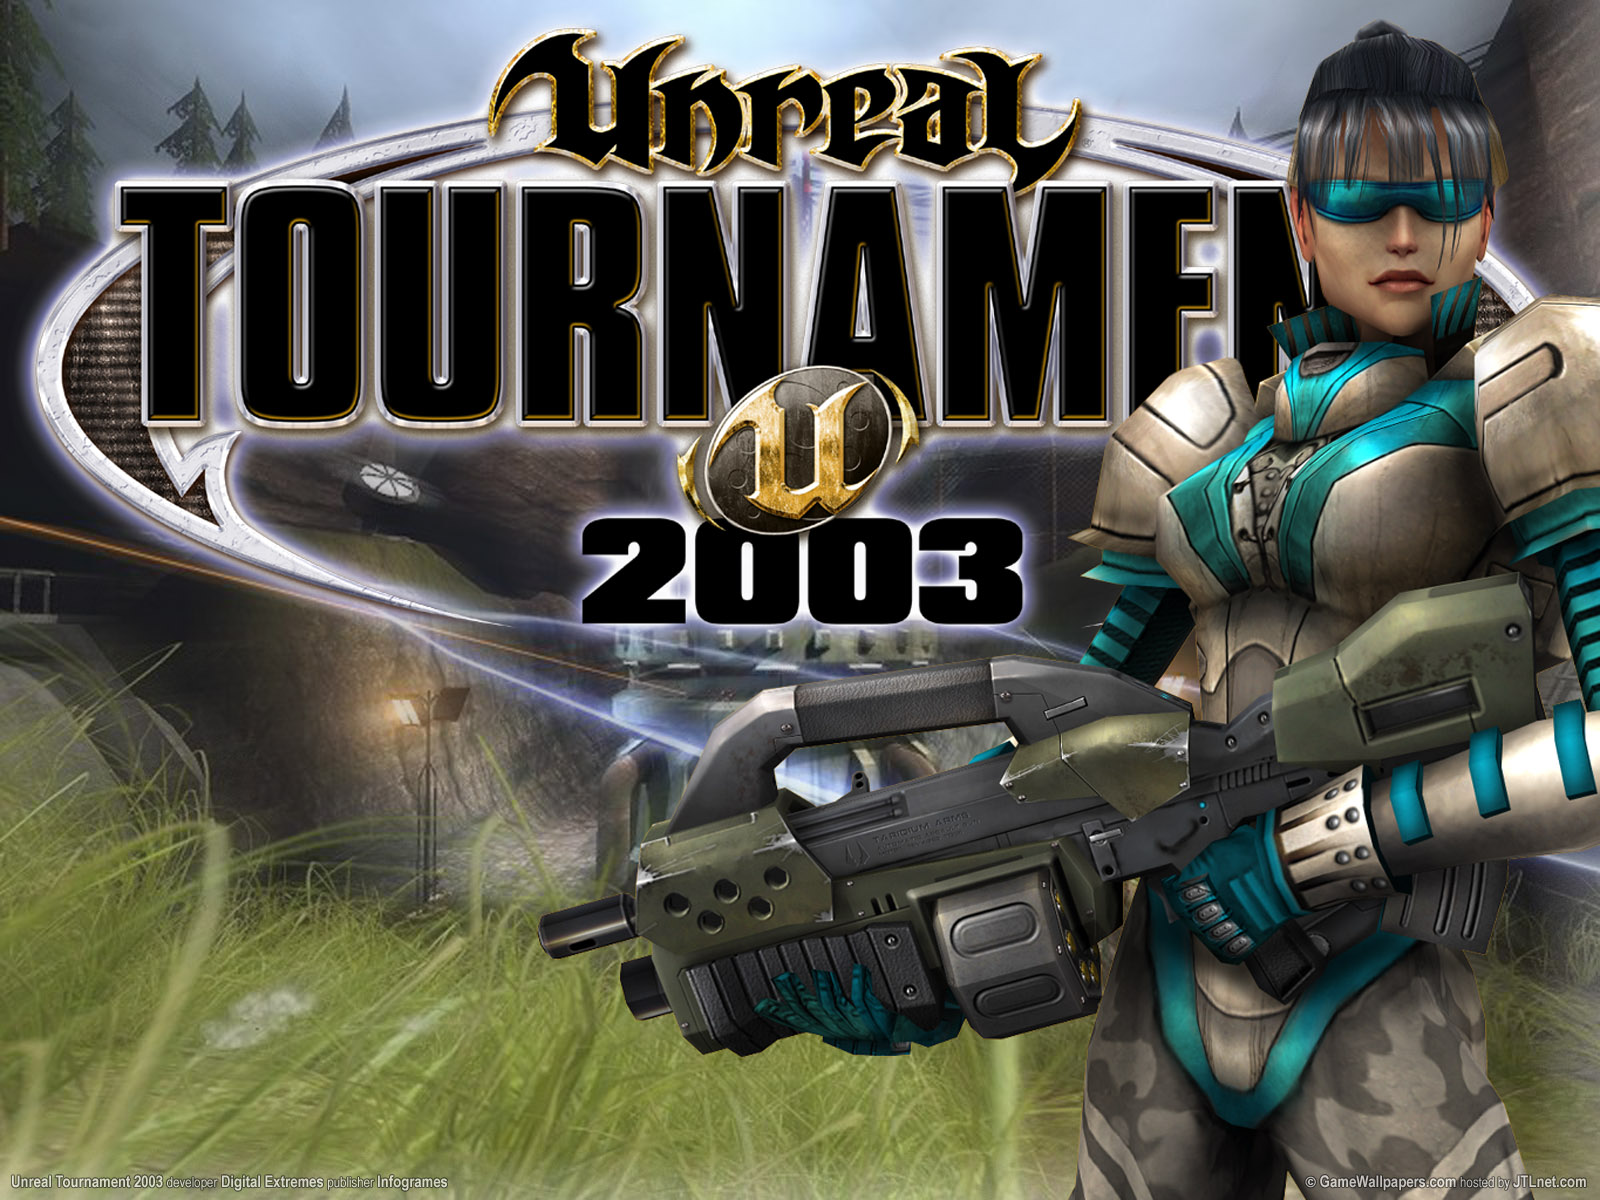 Unreal tournament wallpaper and background image for Unreal tournament 2003